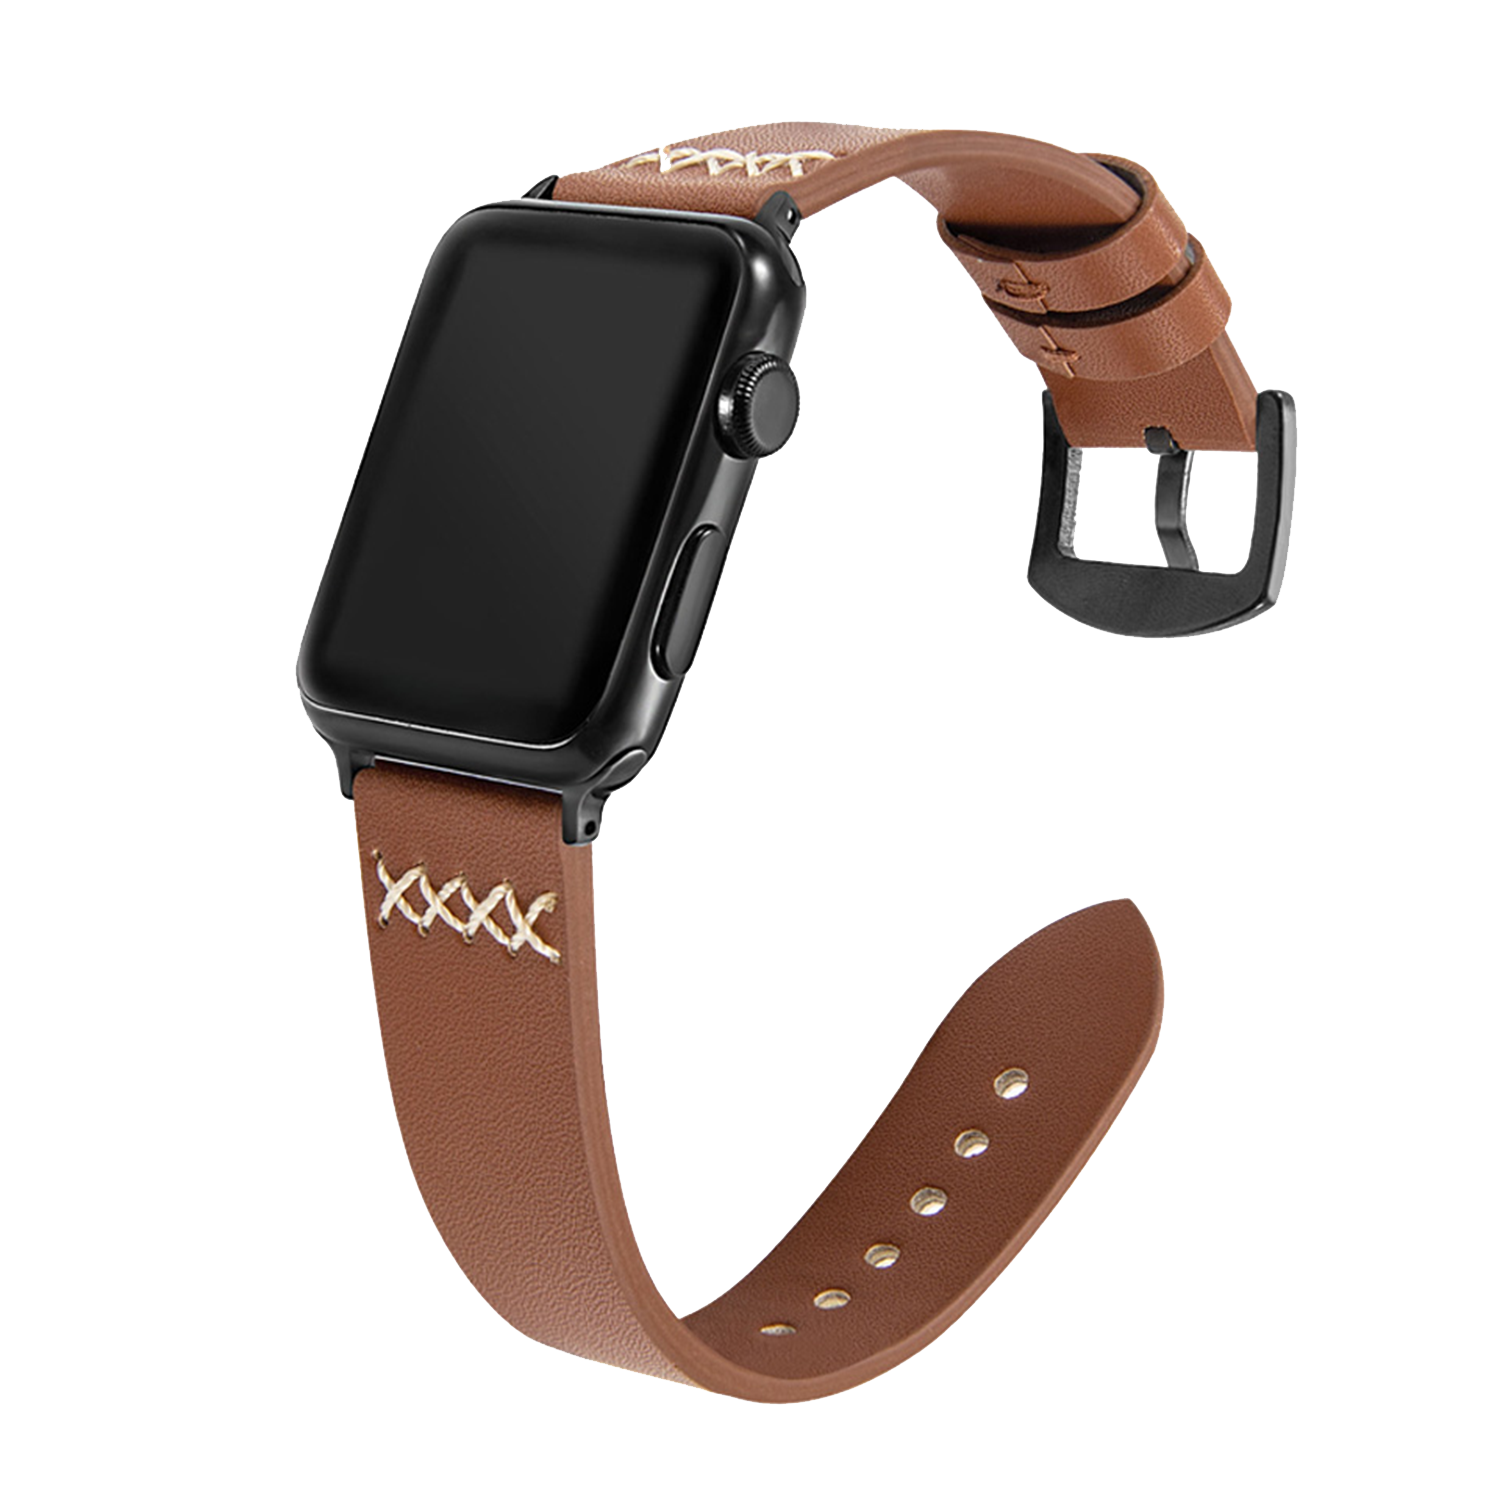 Hand-stitched Leather Strap for Apple Watch 42mm / 44mm - Brown